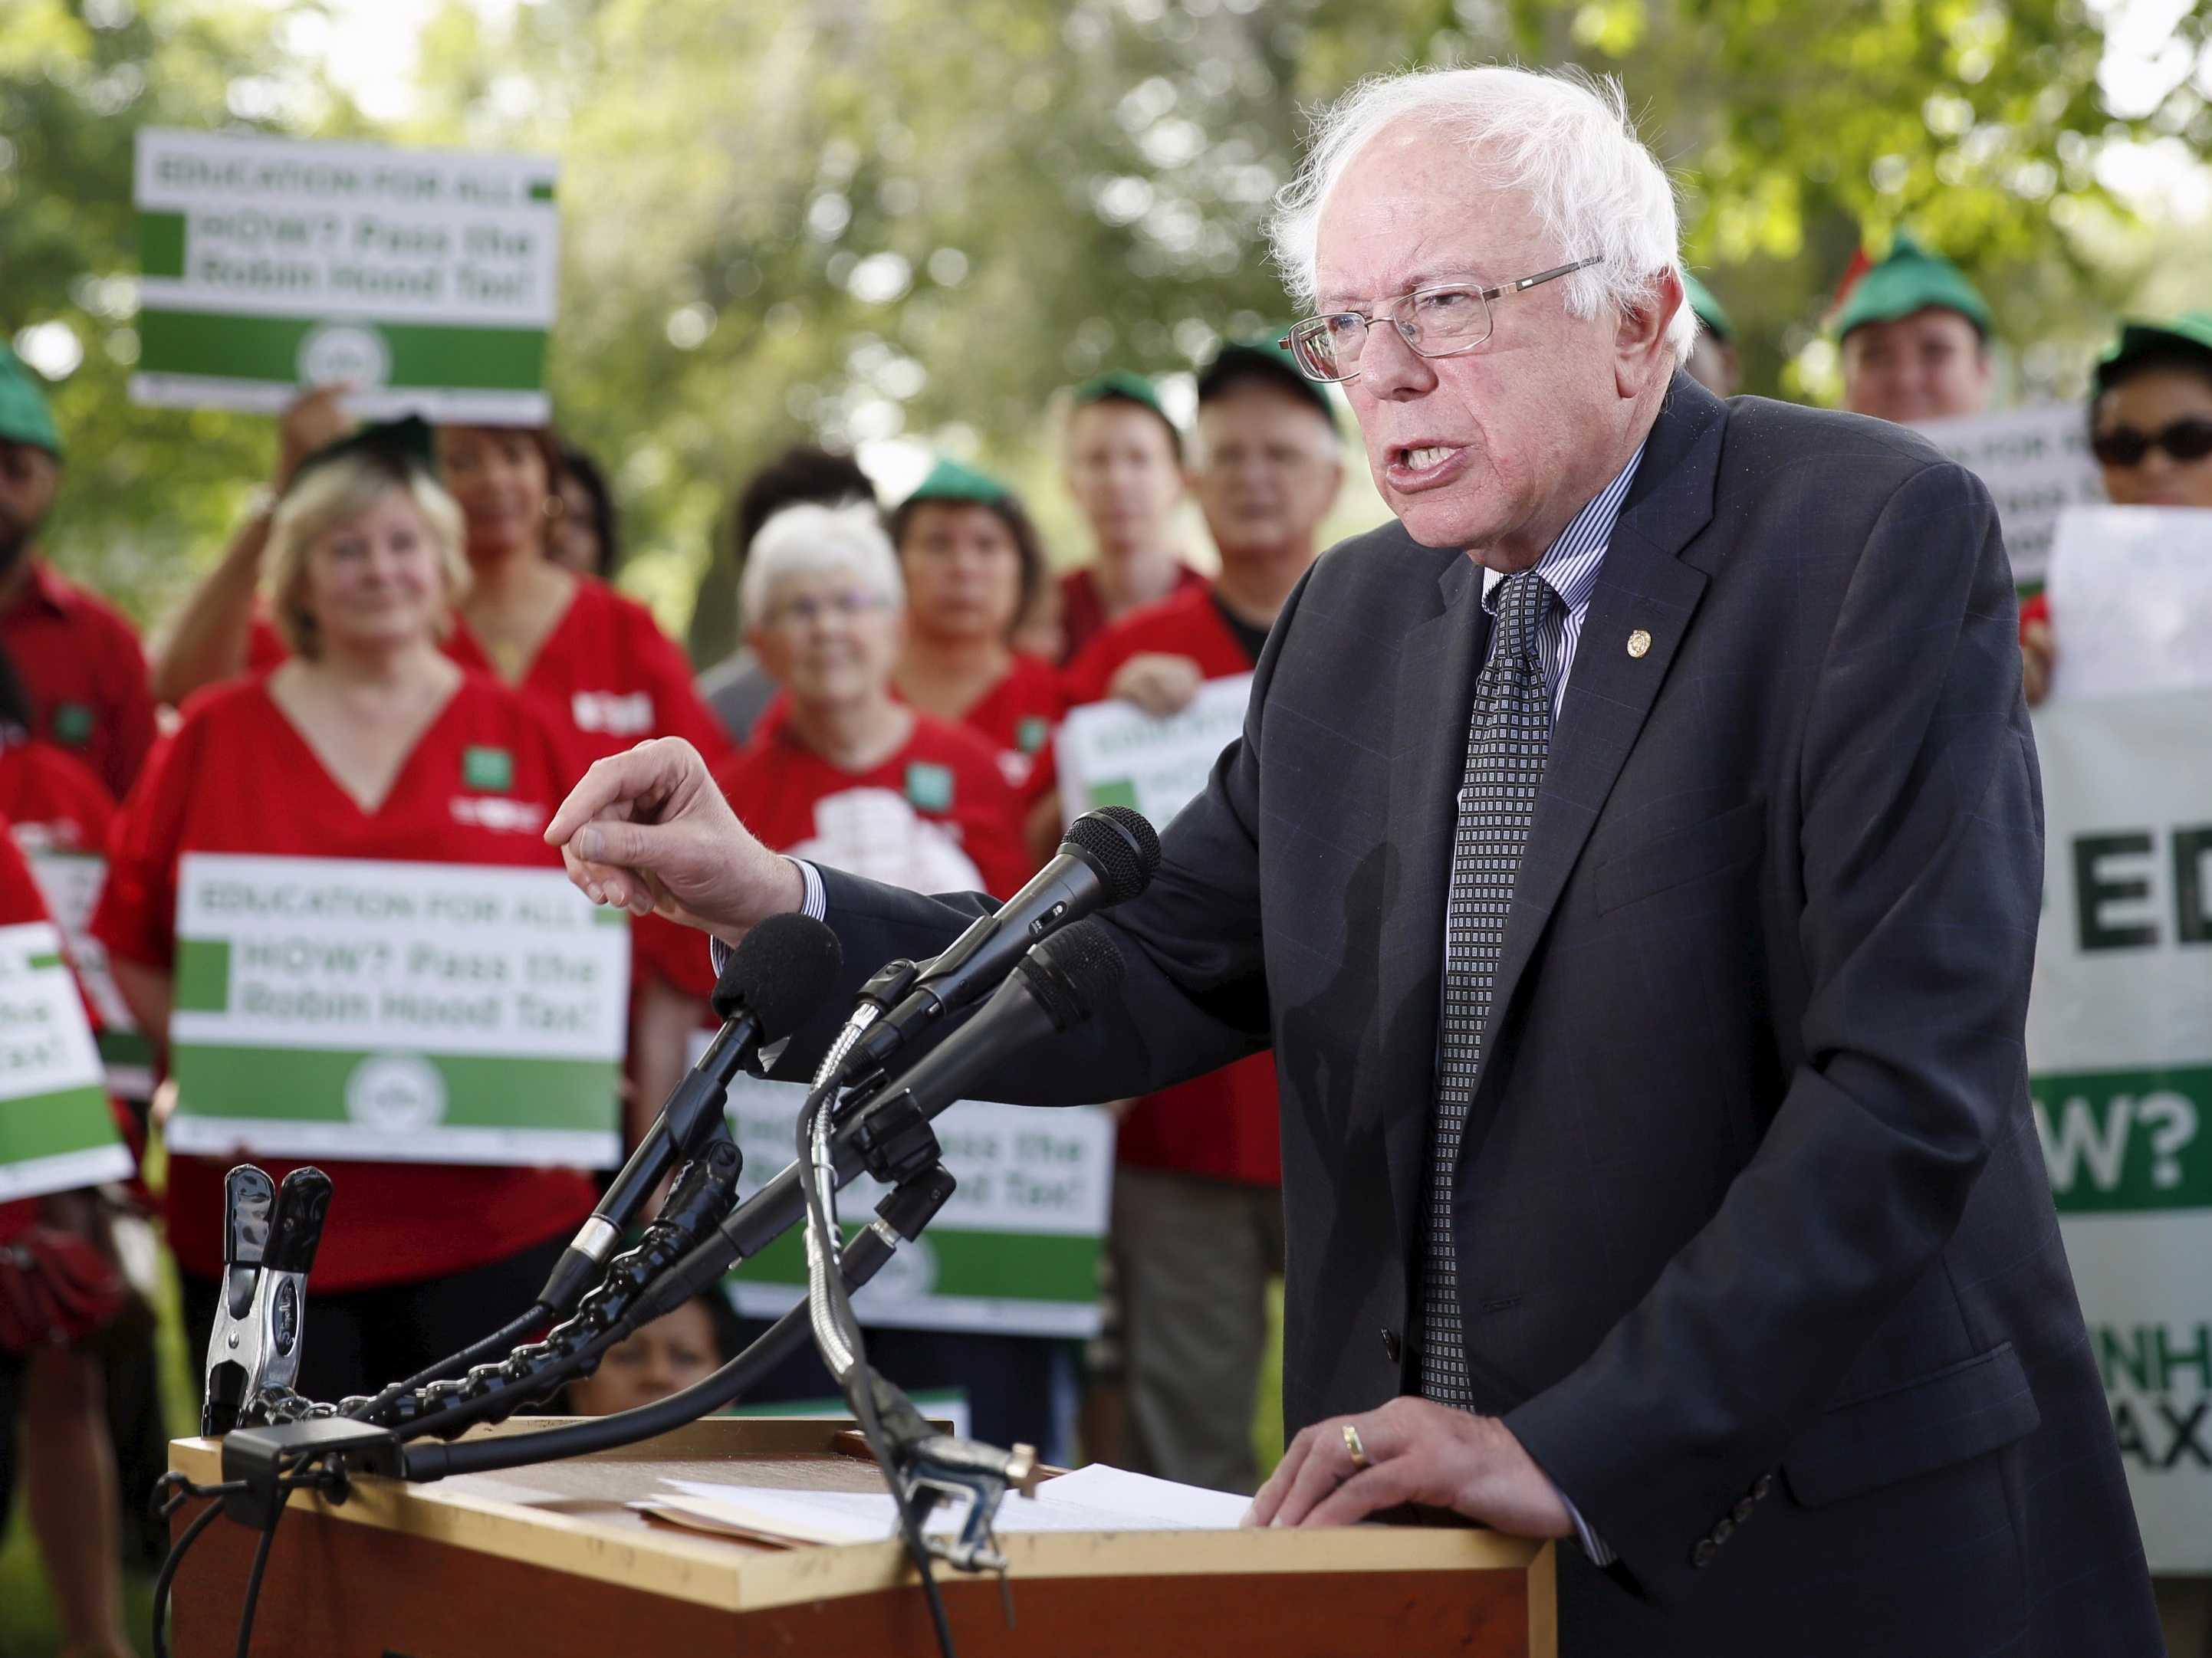 Bernie Sanders: Hillary Clinton's money 'hustle' could isolate her from reality